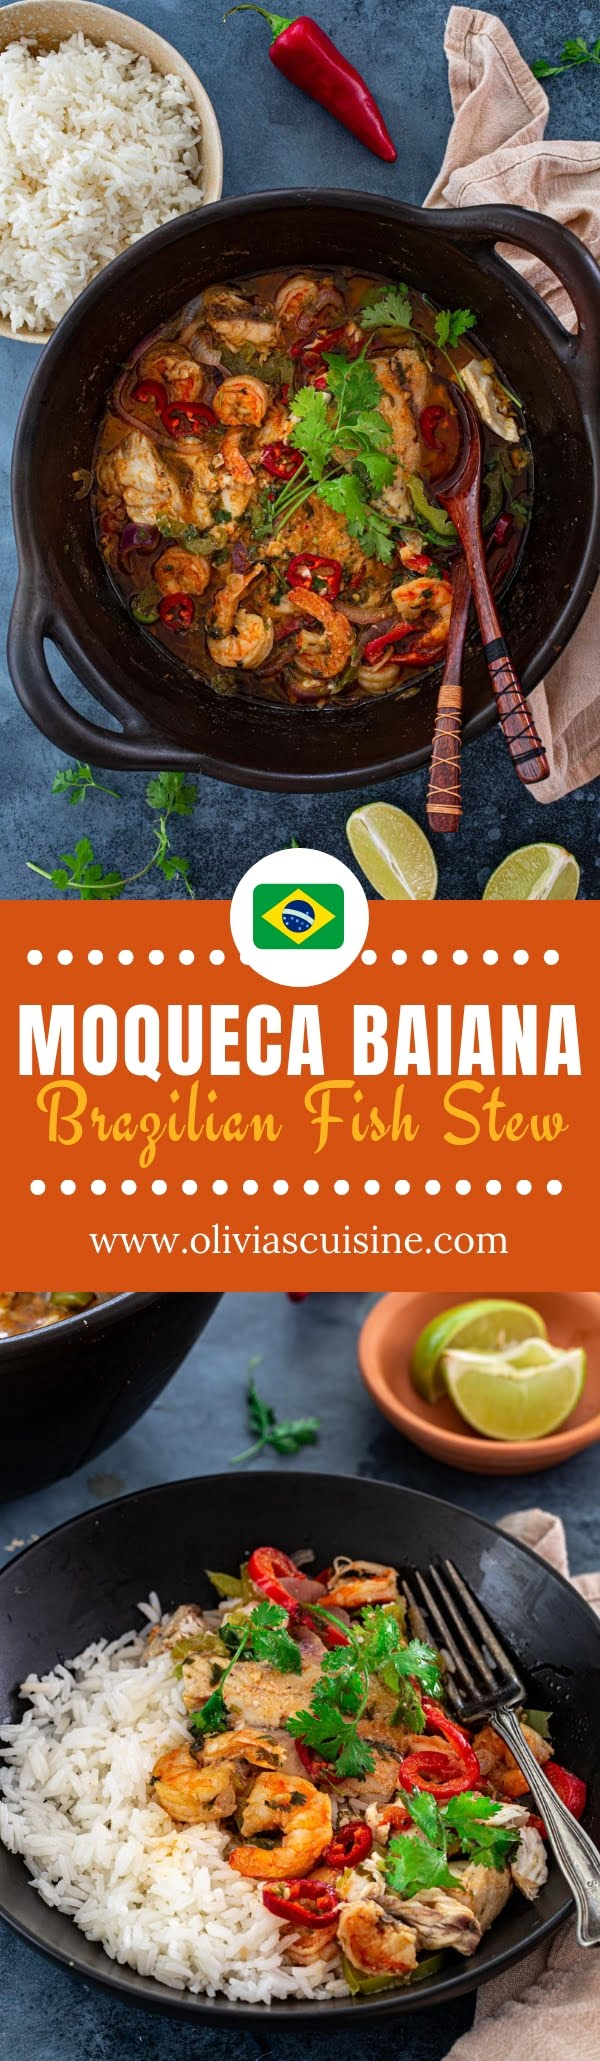 Moqueca Baiana (Brazilian Fish and Shrimp Stew) | www.oliviascuisine.com | If you're a fan of Brazilian cuisine, you simply must make Moqueca Baiana. Bold, flavorful and exotic, this fish and shrimp stew is one of Brazil's most famous dishes and is always a hit! #moqueca #brazilianfood #fishstew #seafoodstew #healthy